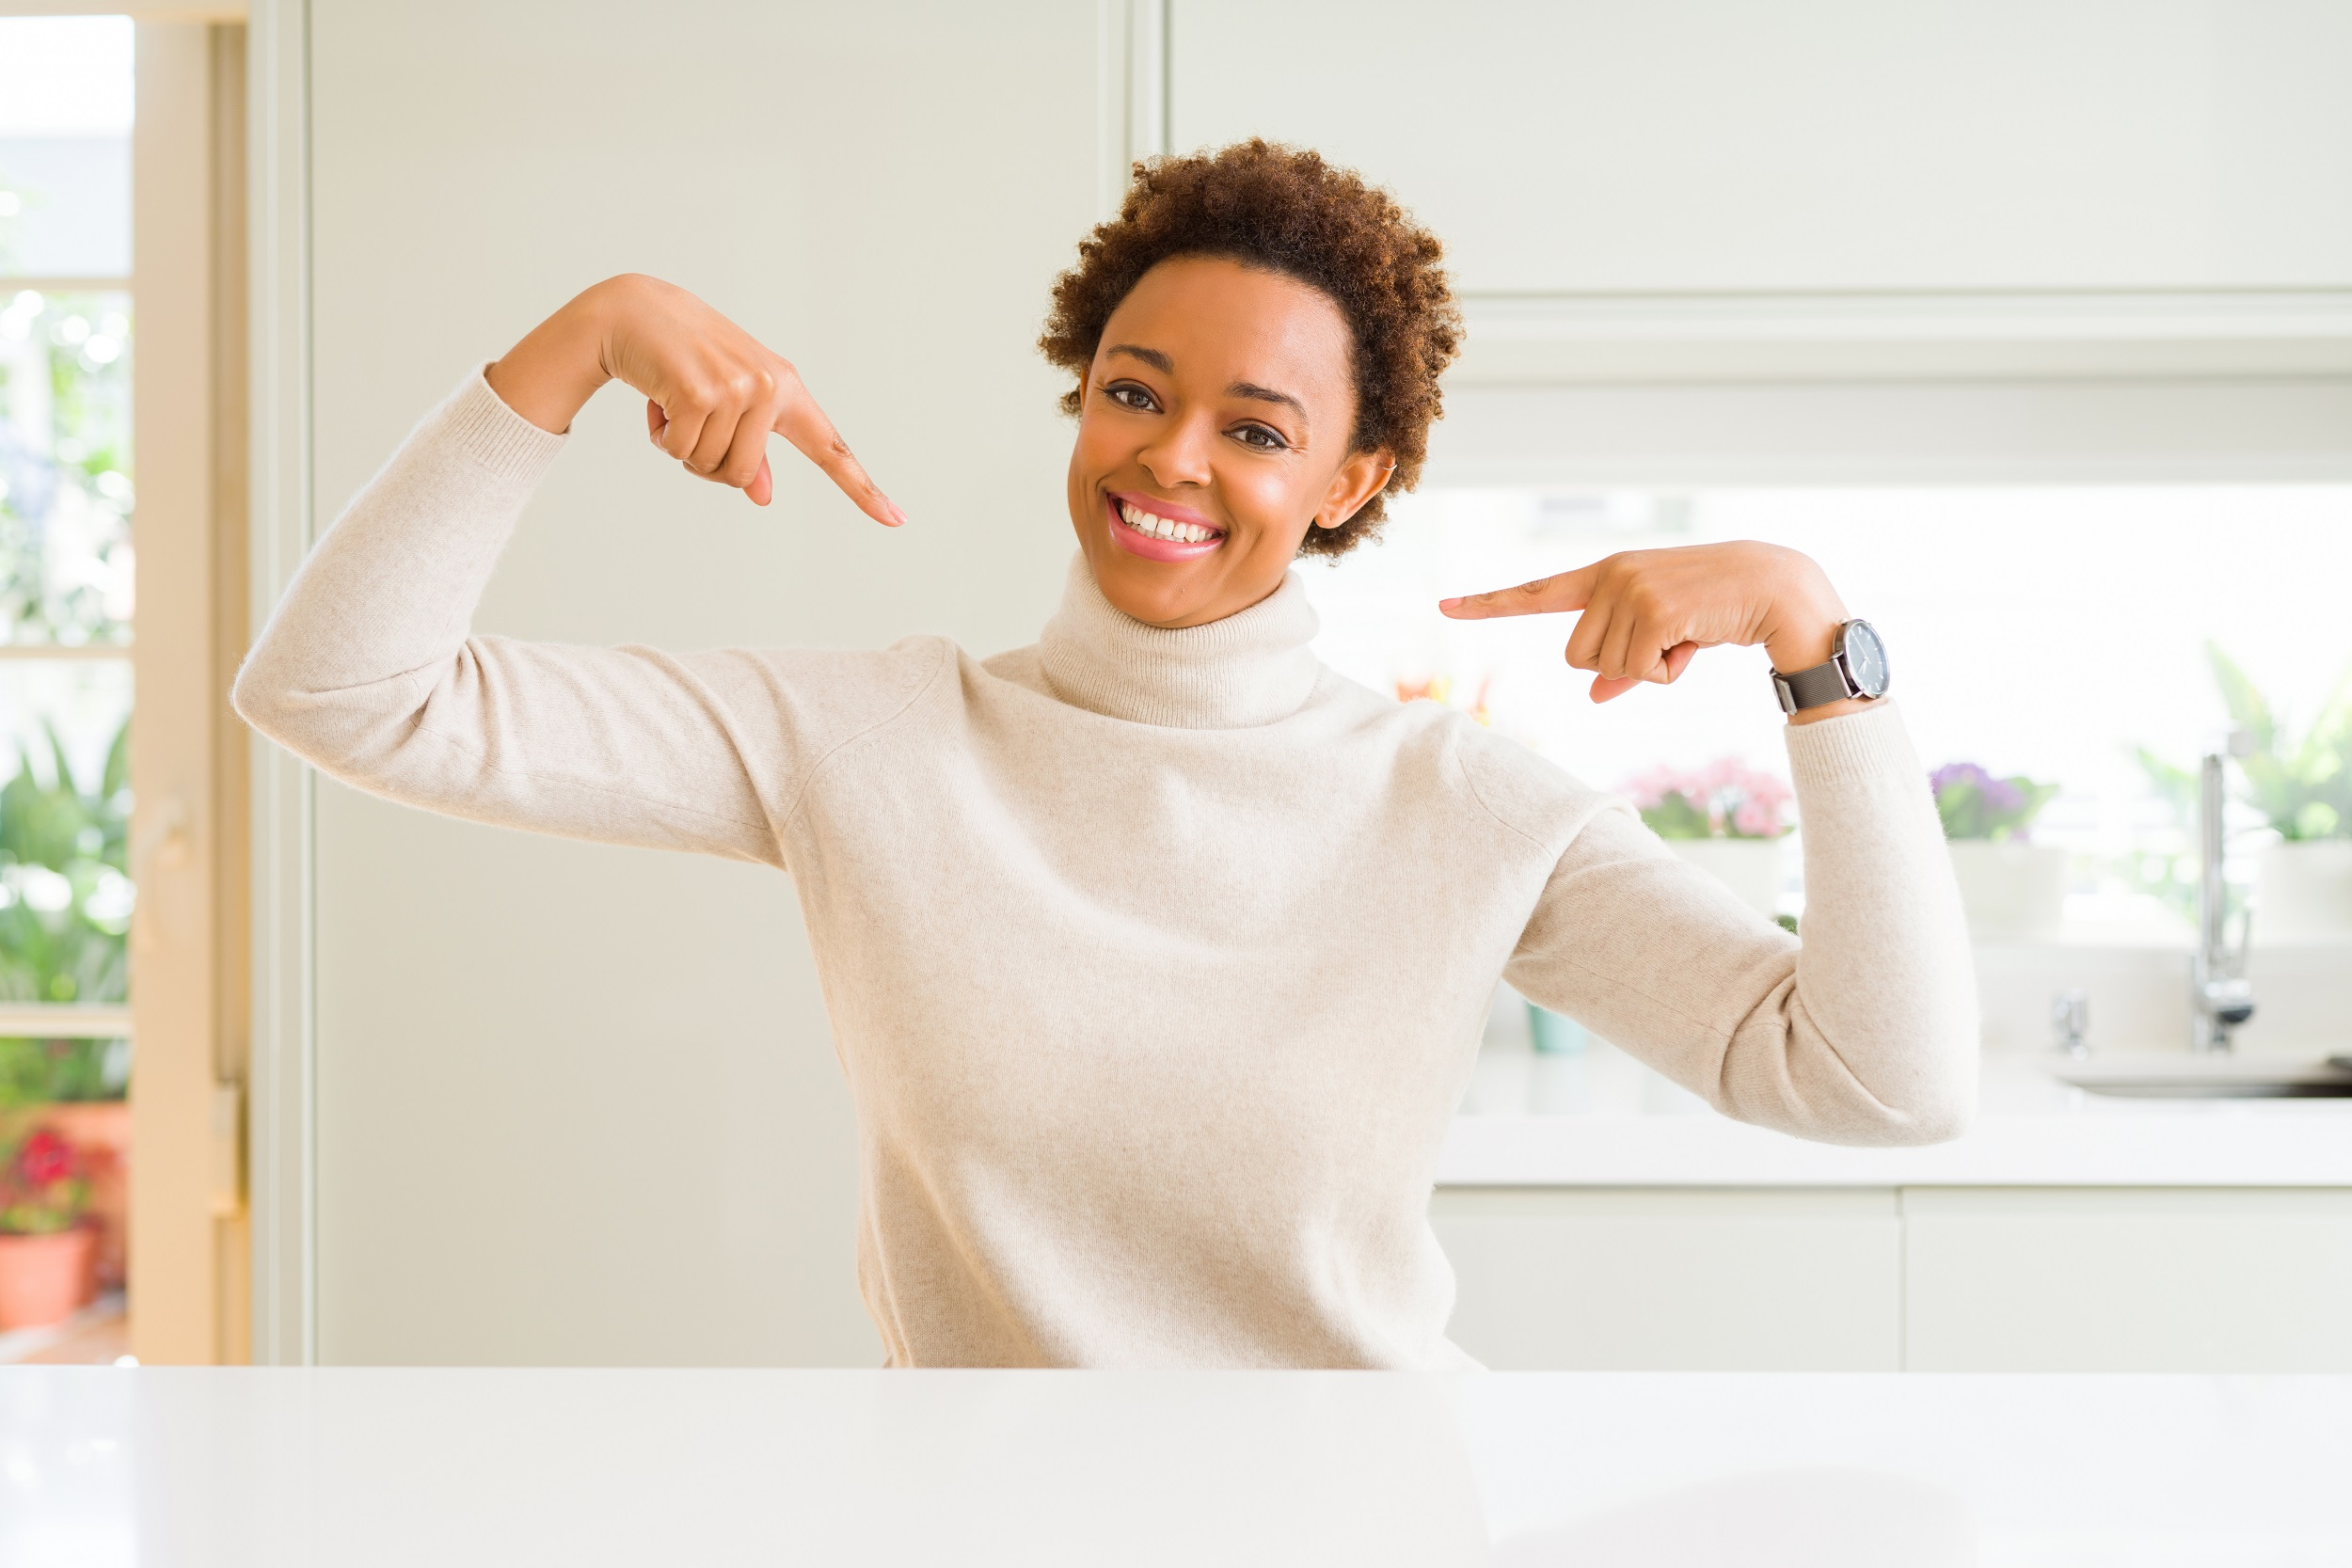 Young beautiful african american woman at home looking confident with smile on face, pointing oneself with fingers proud and happy.